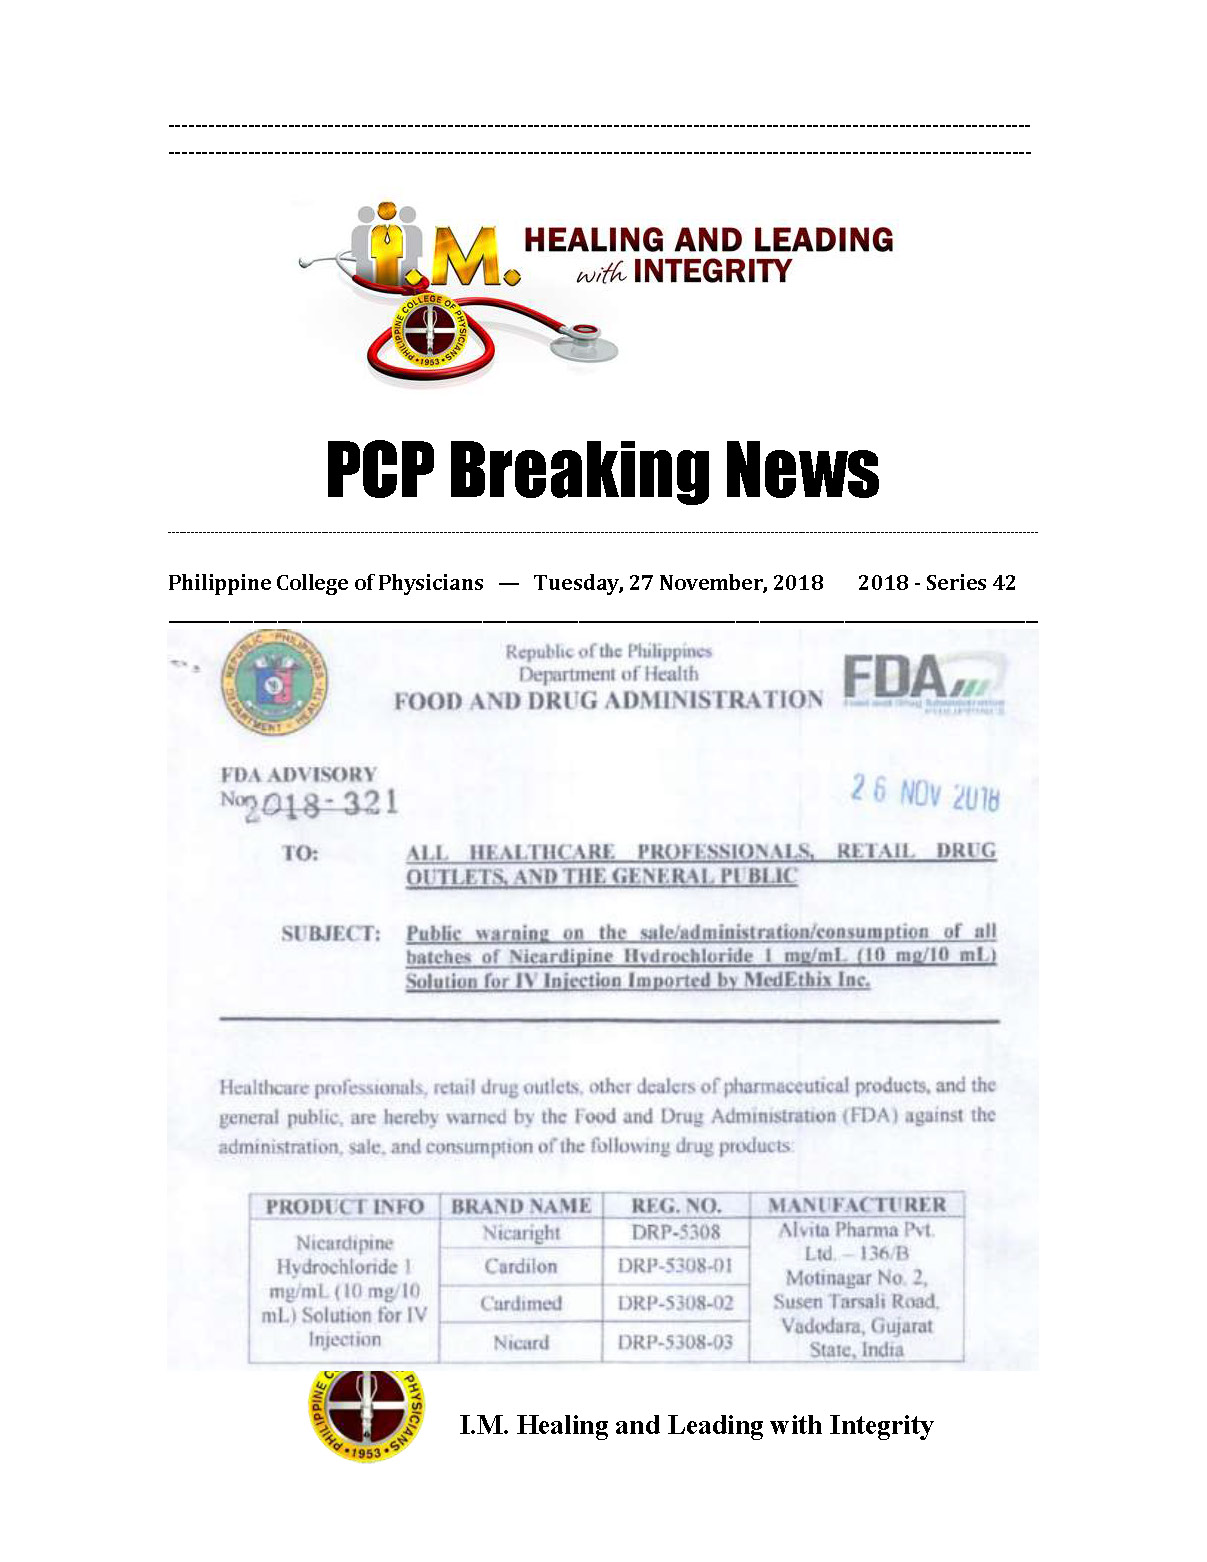 42nd PCP Breaking News FDA 2018 321 Page 1